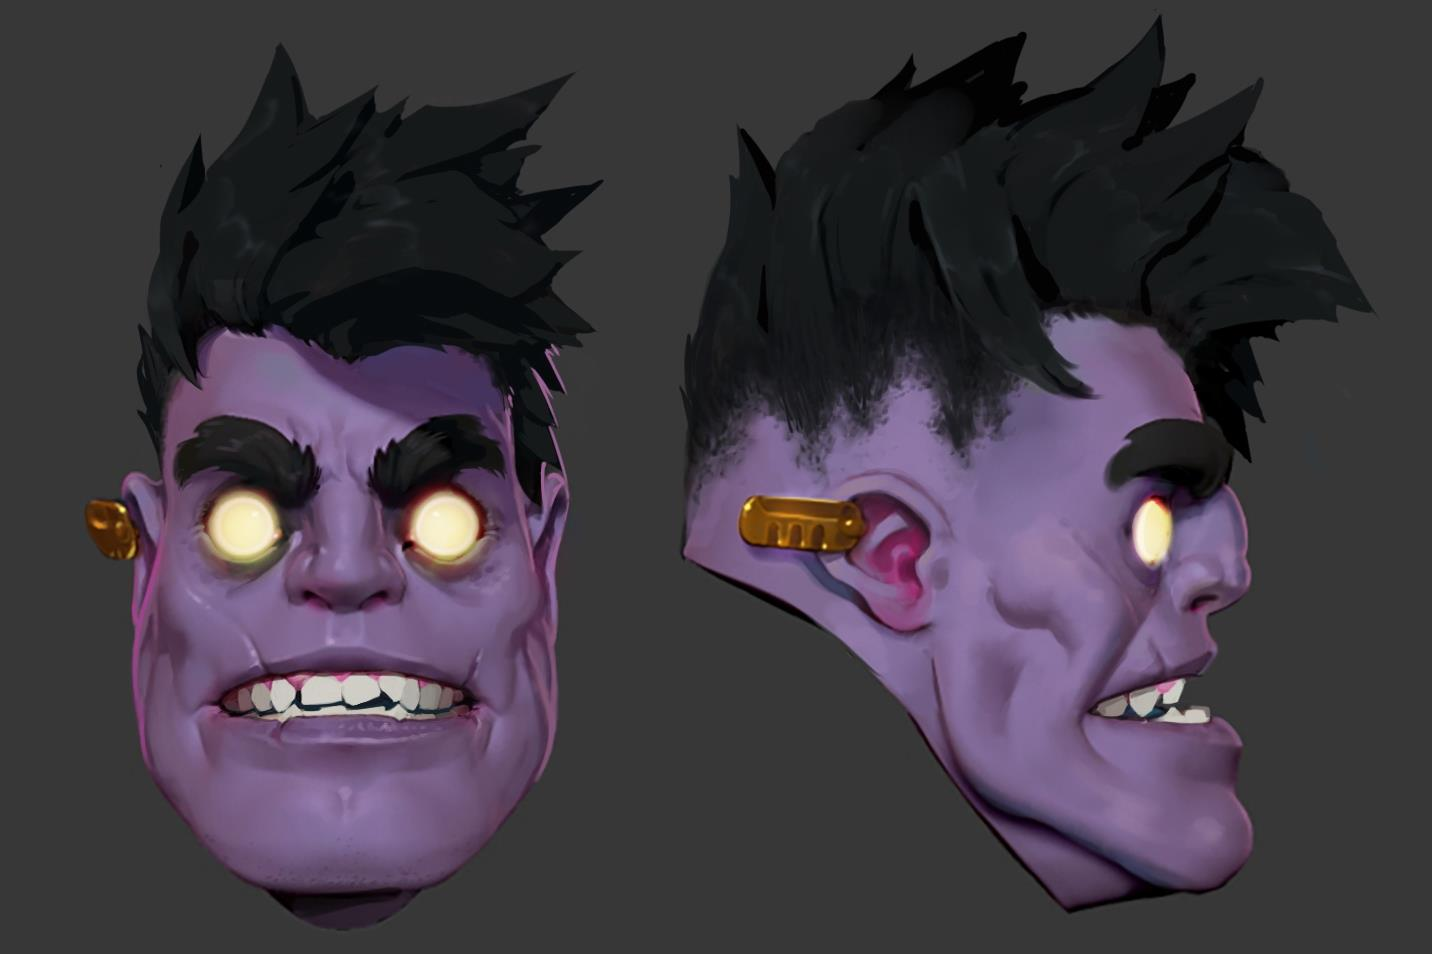 Dr. Mundo - First Tease Of League's VGU in 2021 3